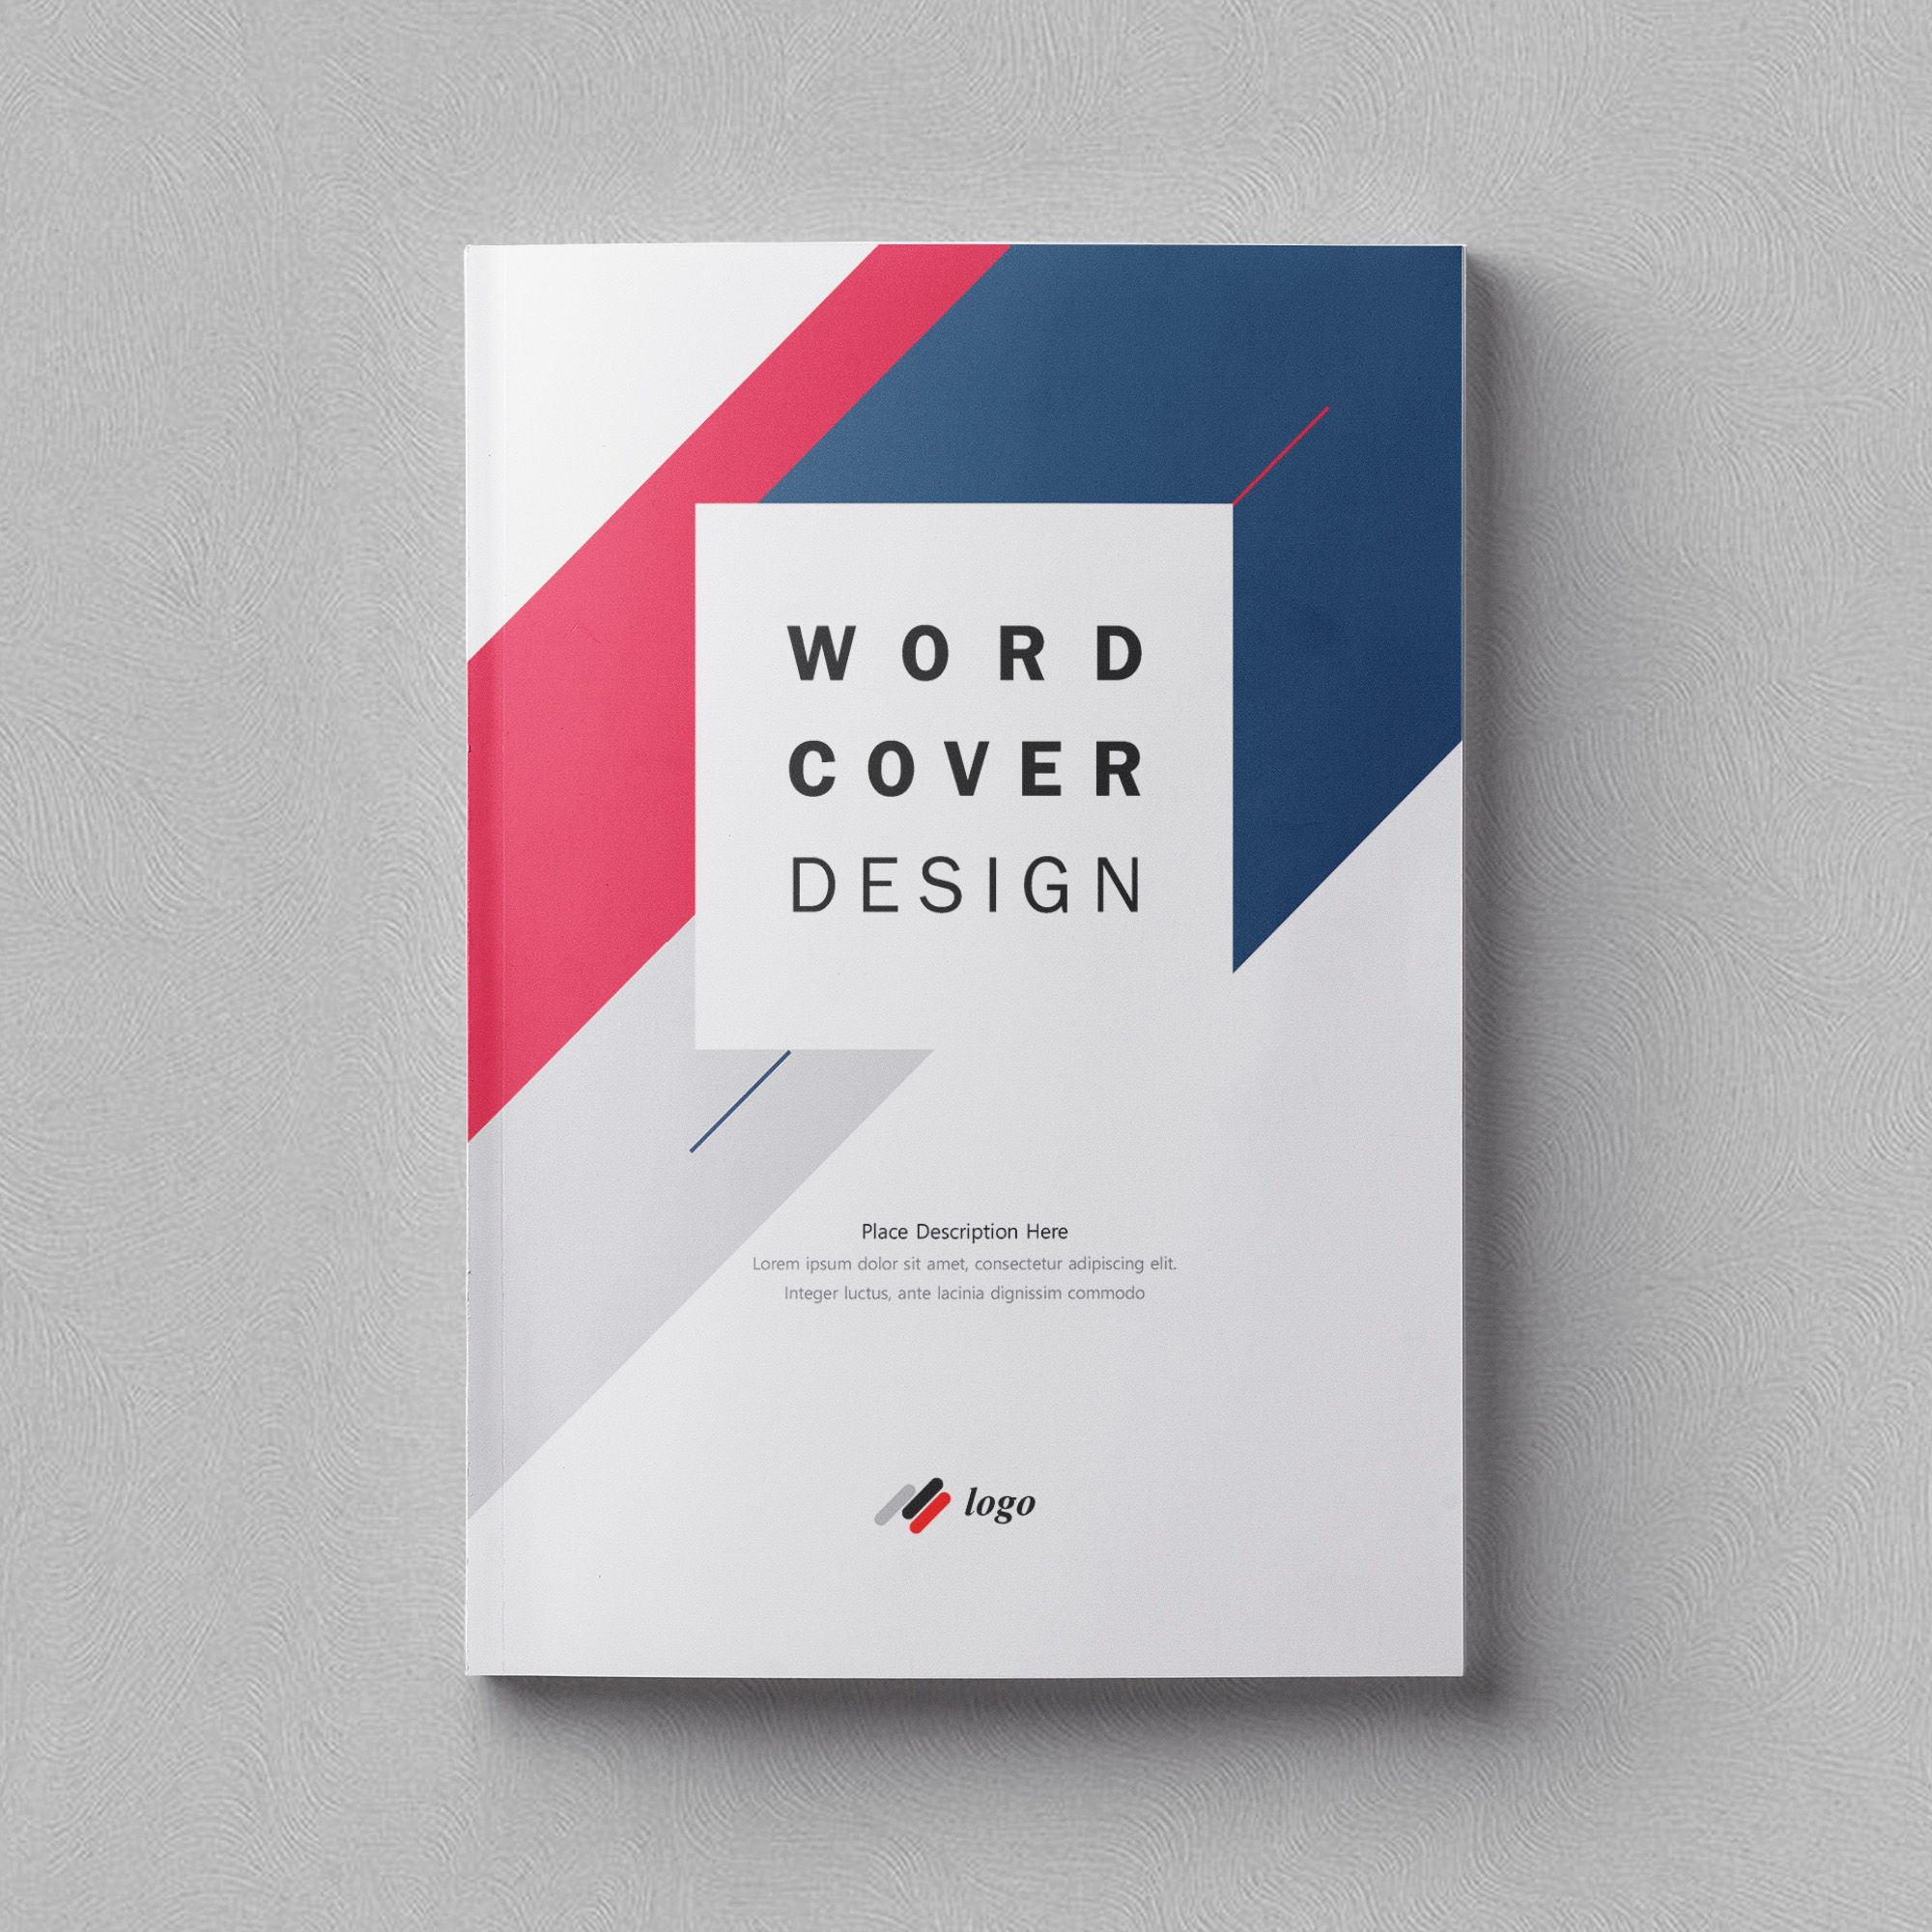 Microsoft Word Cover Templates 08 Free Download In 2020 Cover Template Business Folder Design Book Cover Design